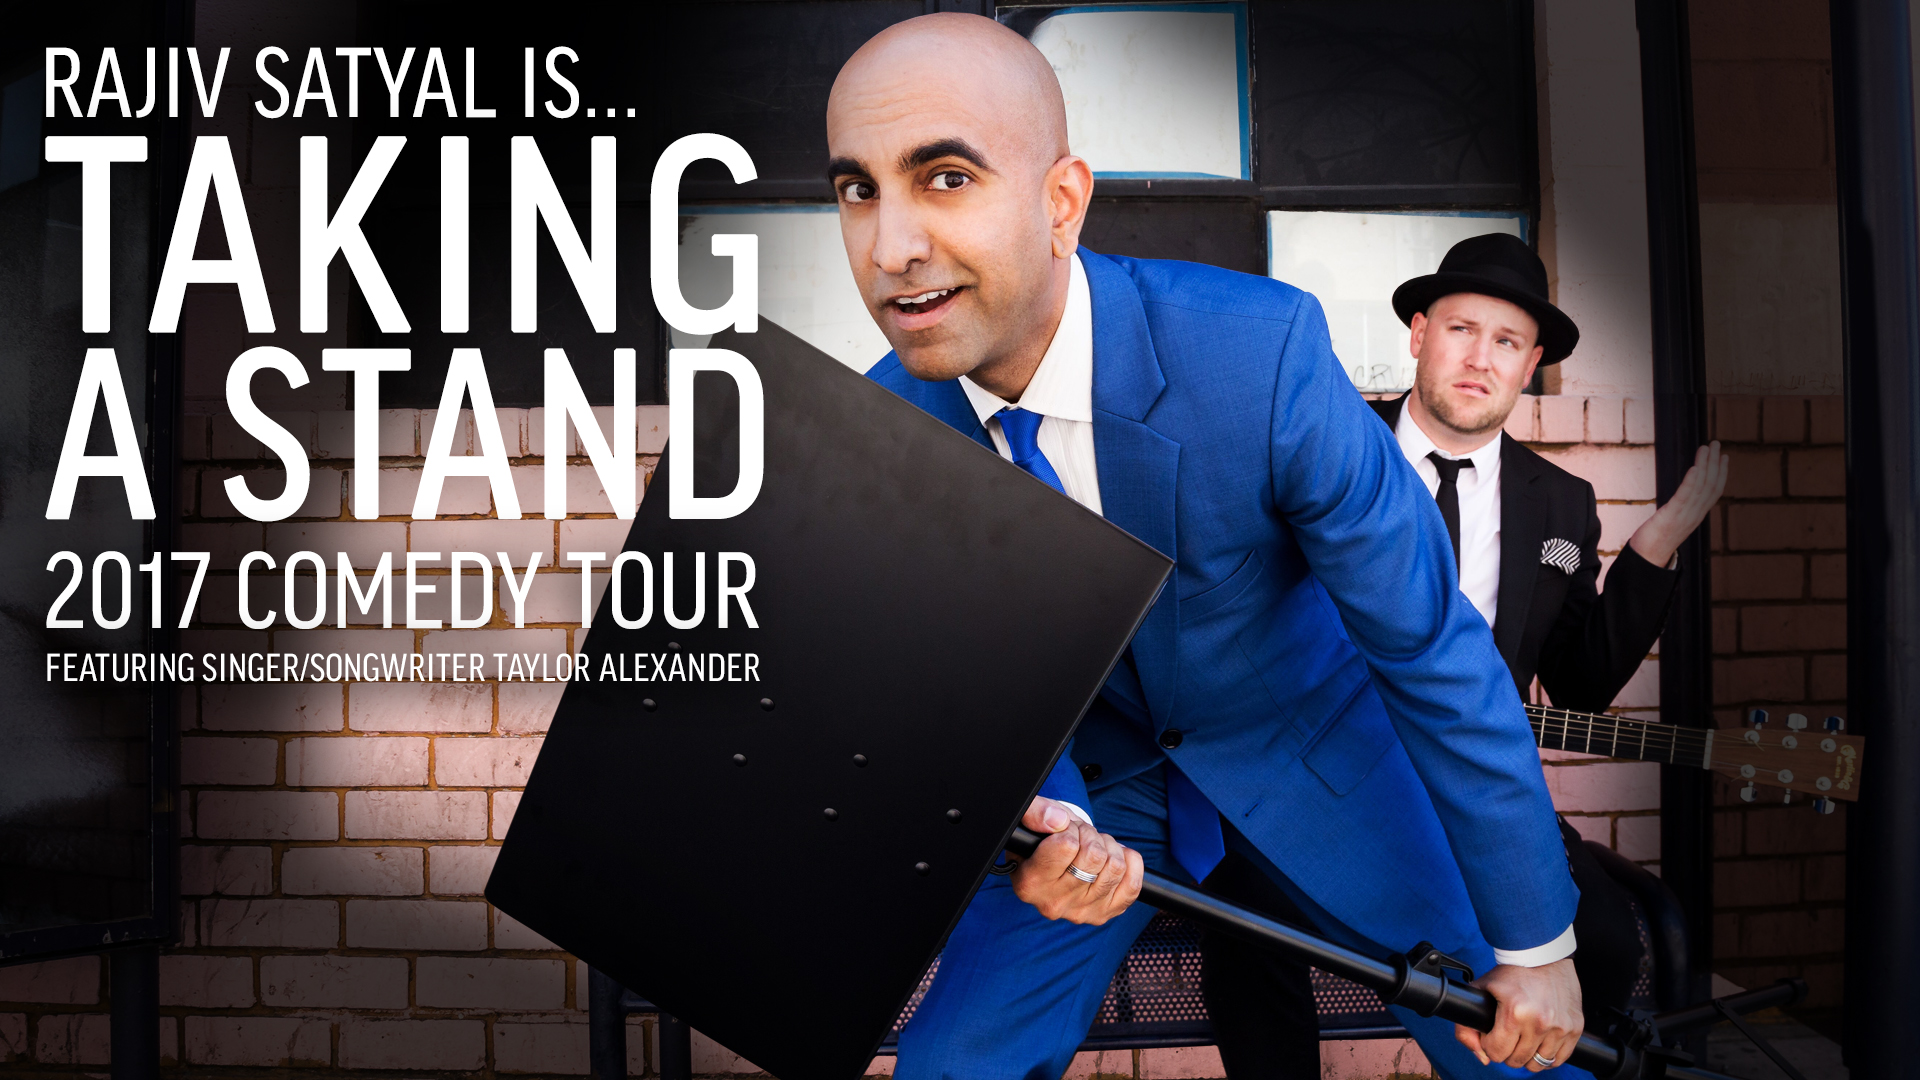 Rajiv Satyal's Taking a Stand Comedy Tour - Nashville